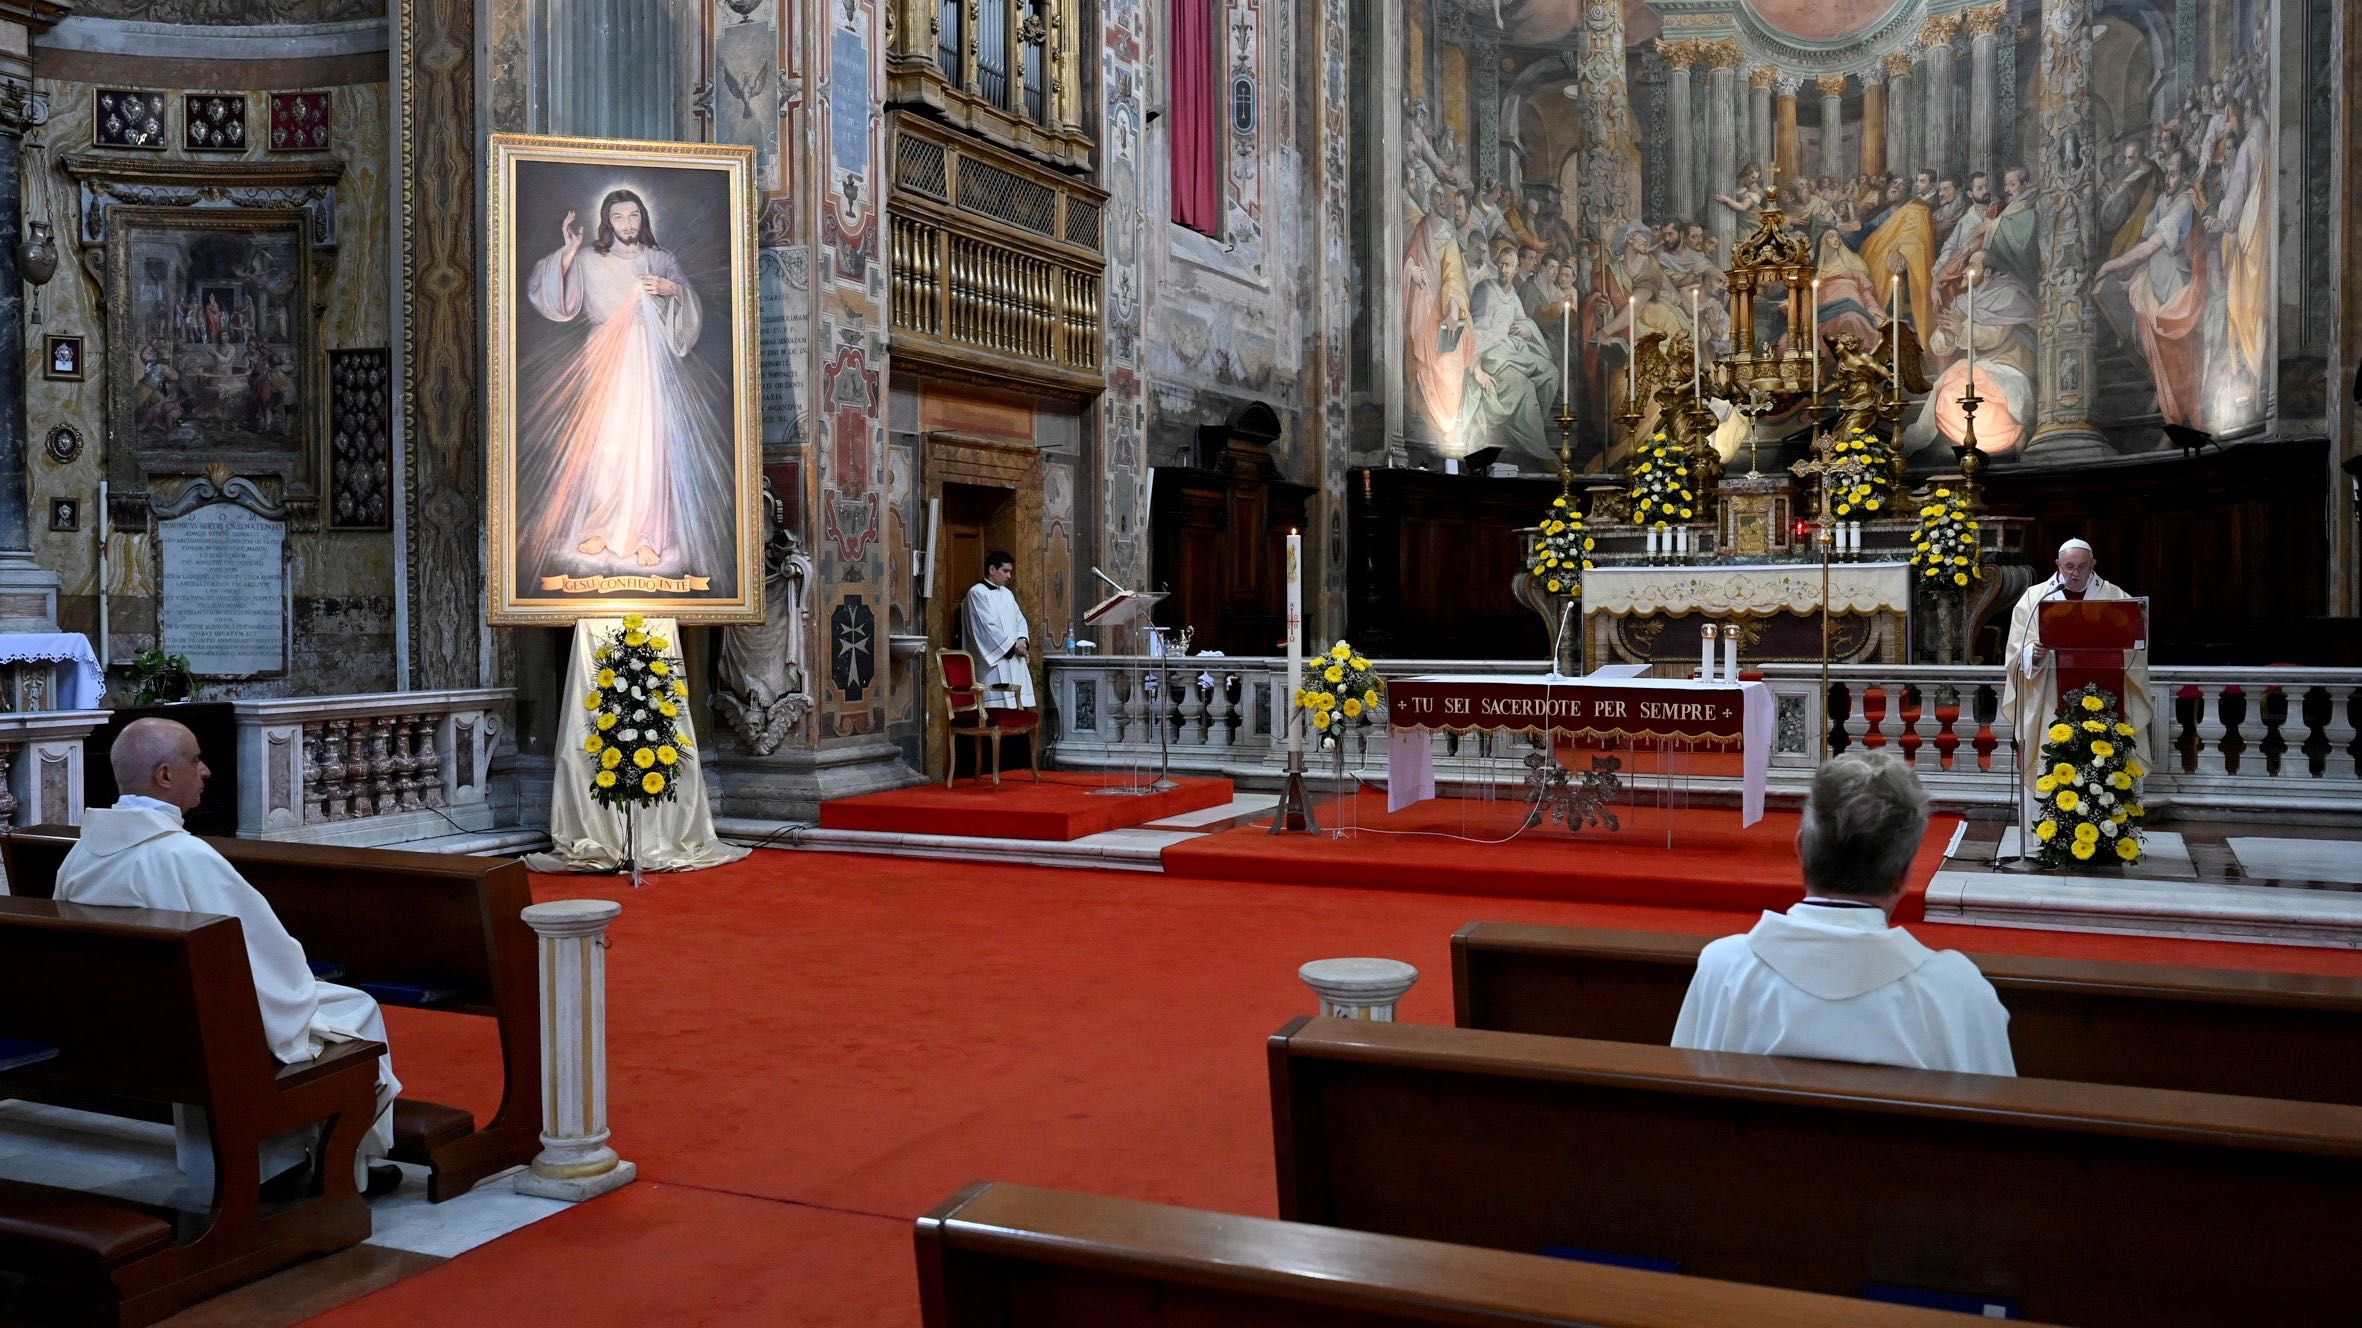 Pope Francis leads Mass and the Regina Coeli prayer in Rome's Santo Spirito in Sassia church without public participation due to an outbreak of the coronavirus disease (COVID-19), in Rome, April 19, 2020.